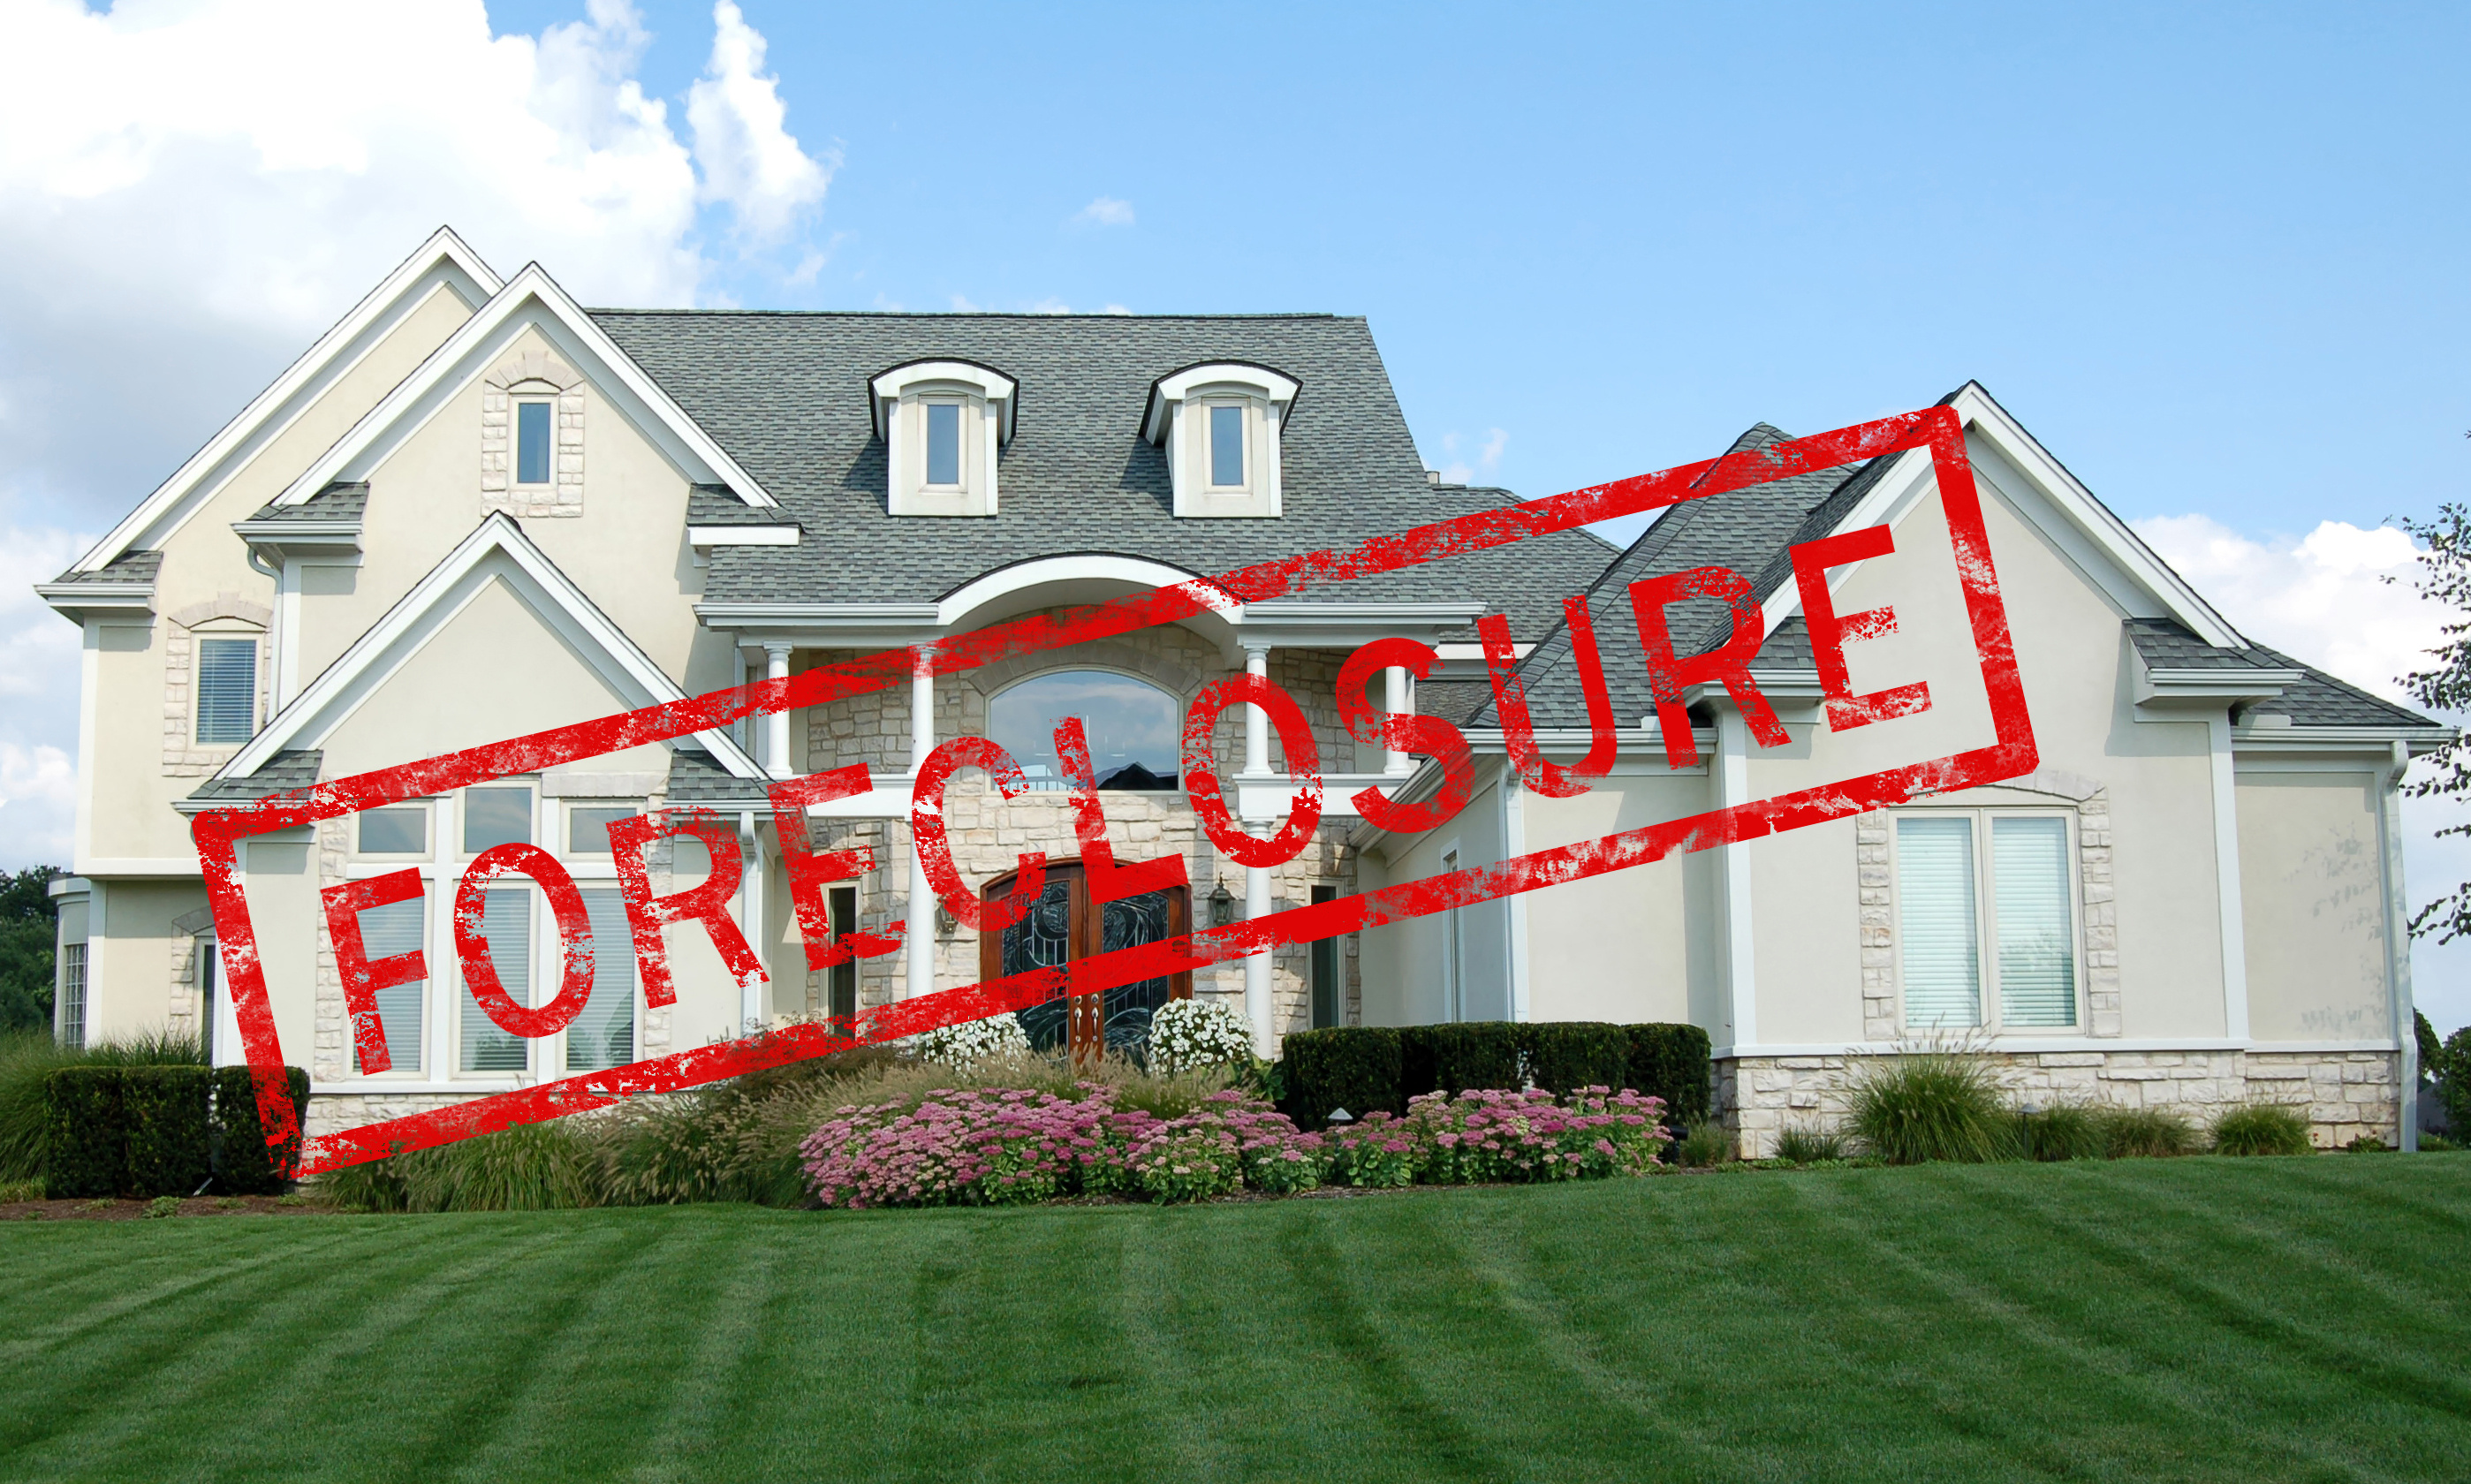 Call Eastern Appraisal Company when you need appraisals on Palm Beach foreclosures